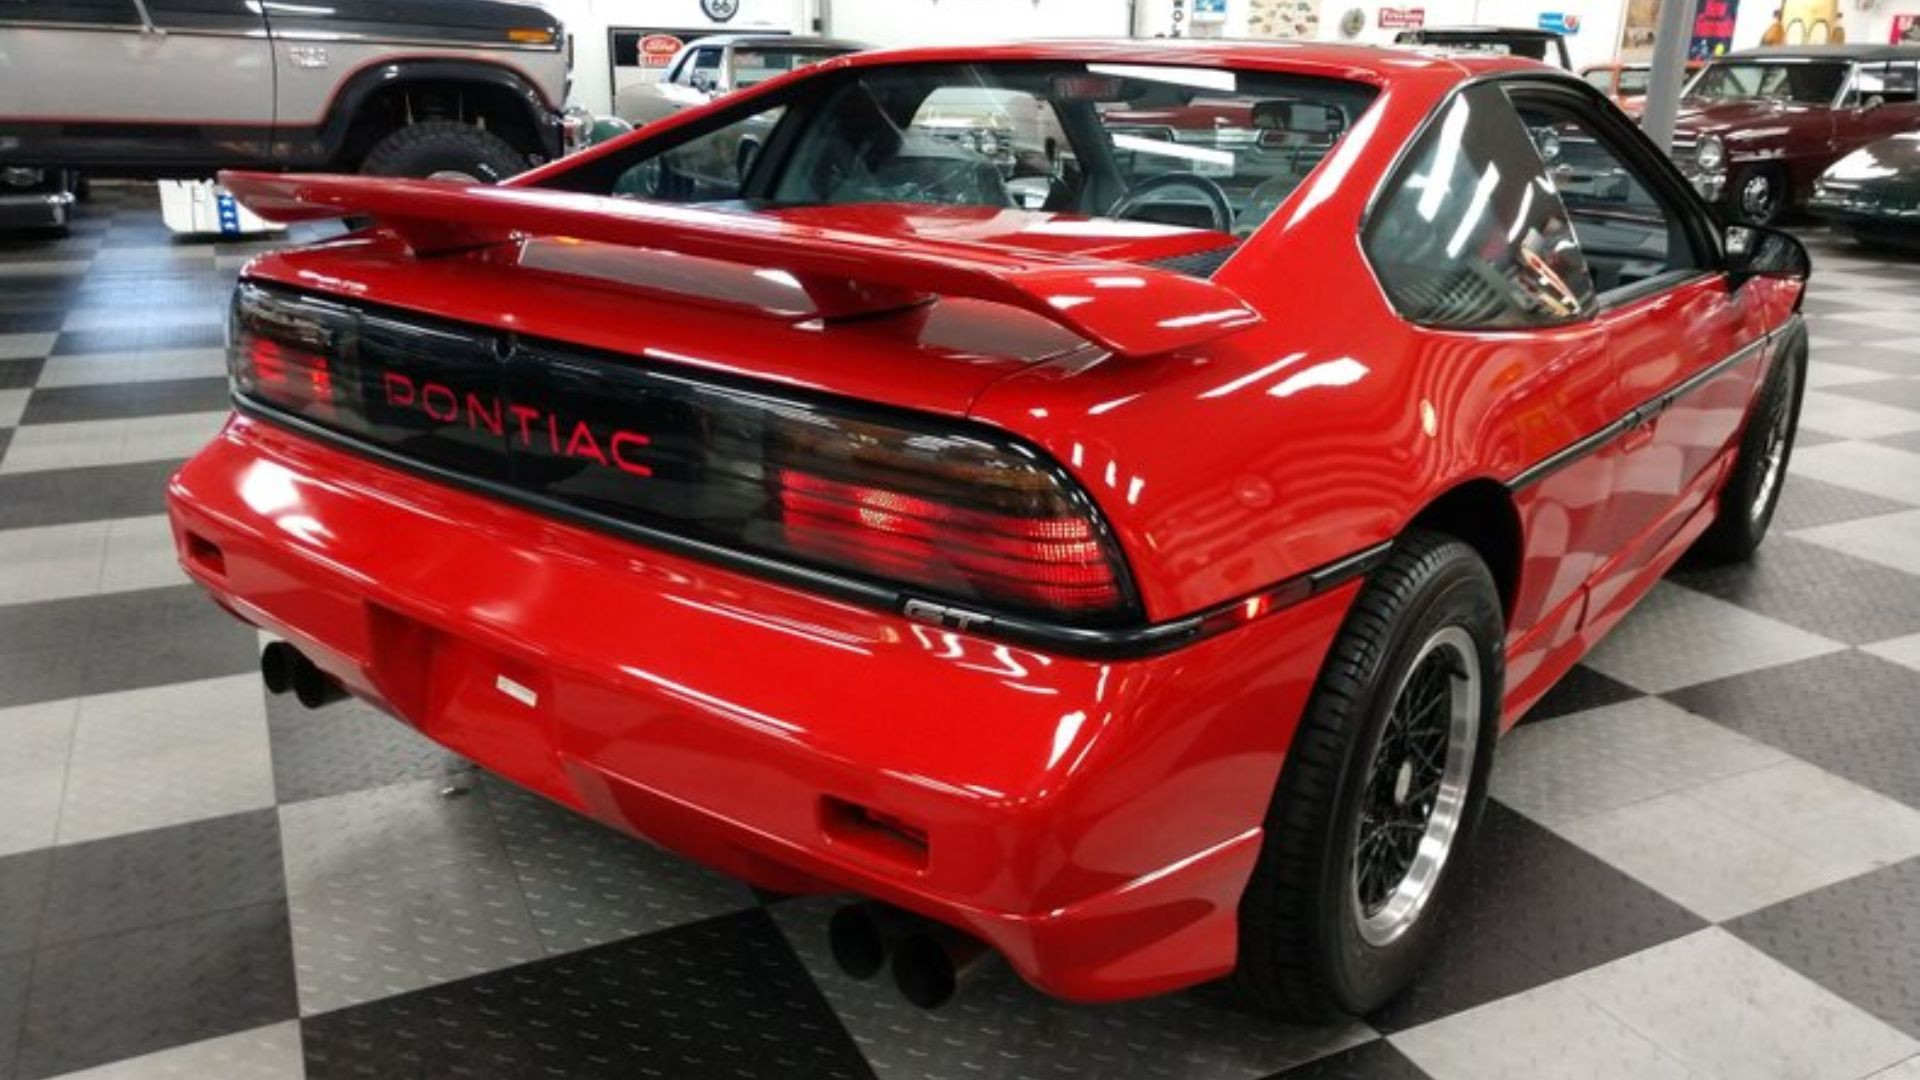 1988 Pontiac Fiero Is The Last One Ever Built By Sam Maven Motorious Medium